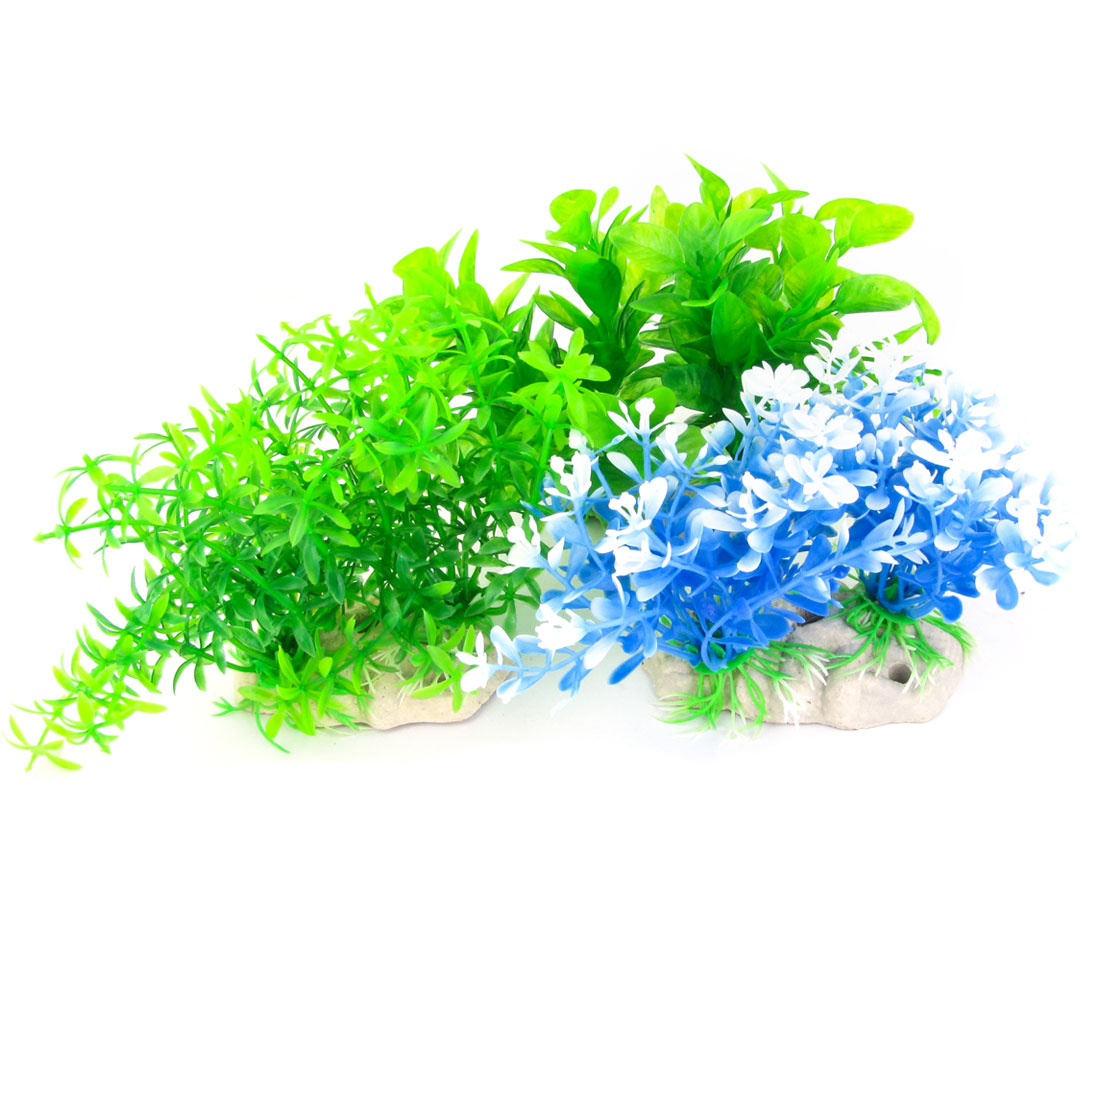 "Aquarium Blue Green 3.8"" High Artificial Plastic Plant Grass Ornament 3 Pcs"